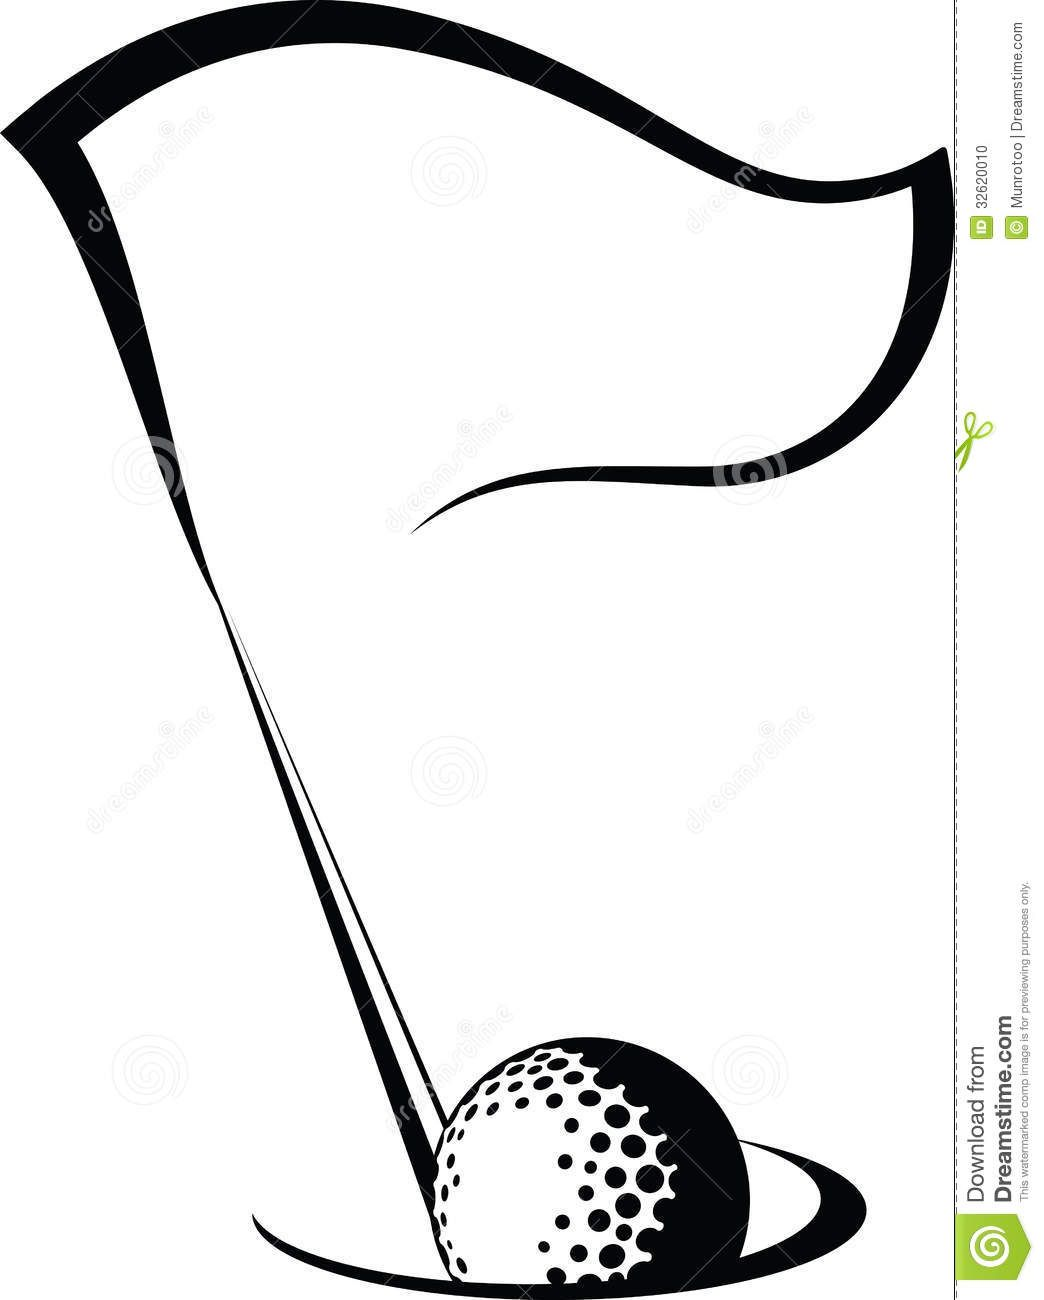 Golf Flag With Ball In Hole Download From Over 62 Million High Quality Stock Photos Images Vectors Sign Up For Free Golf Ball Crafts Golf Tattoo Golf Art